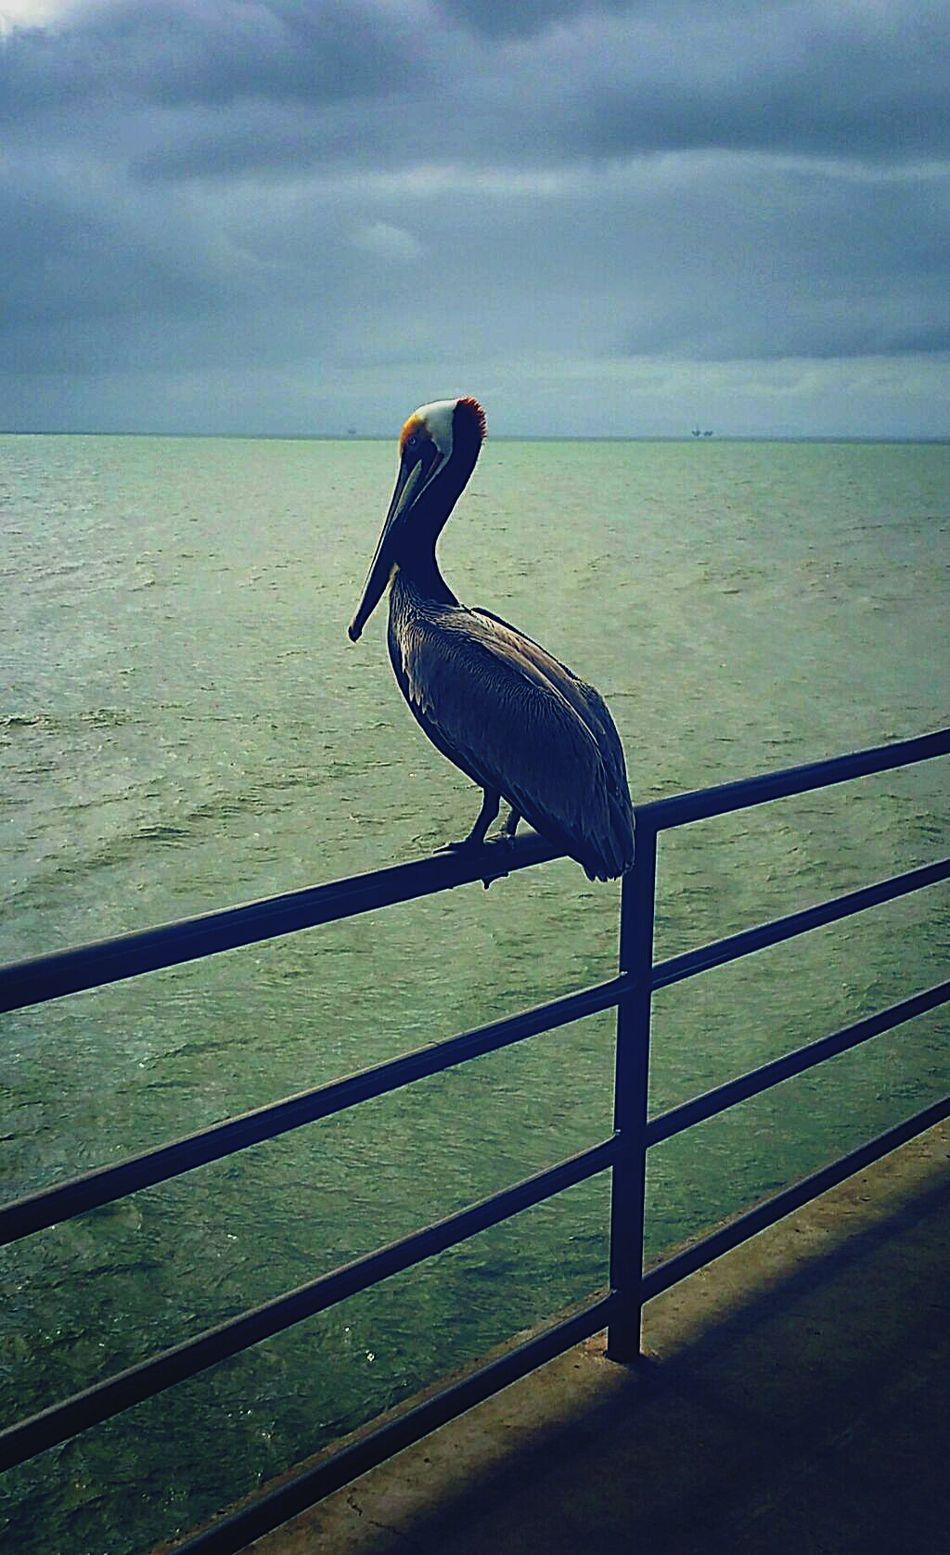 Sea Bird Water Animals In The Wild One Animal Beauty In Nature Pelican Outdoors Pier Animal Wildlife Day Beauty In Nature Scenics Godrules Beach Photography Hbpier Nature Beach No People Beachphotography Sharpen Solitude Coastal Feature Applicators